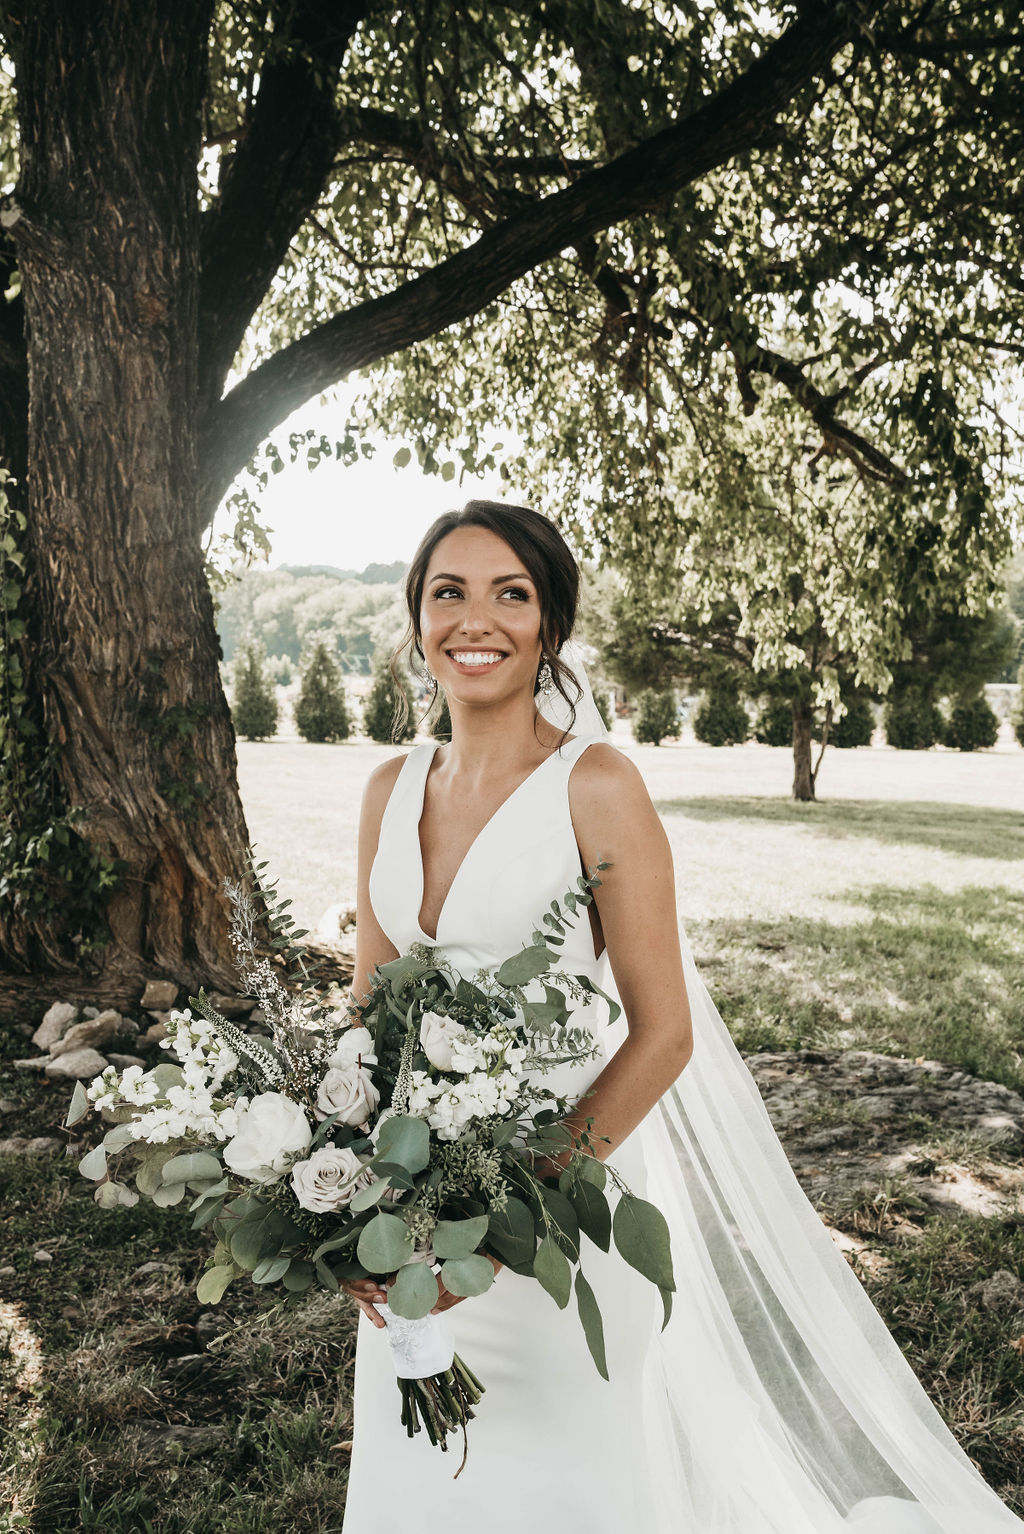 Bridal portrait with white and greenery wedding bouquet